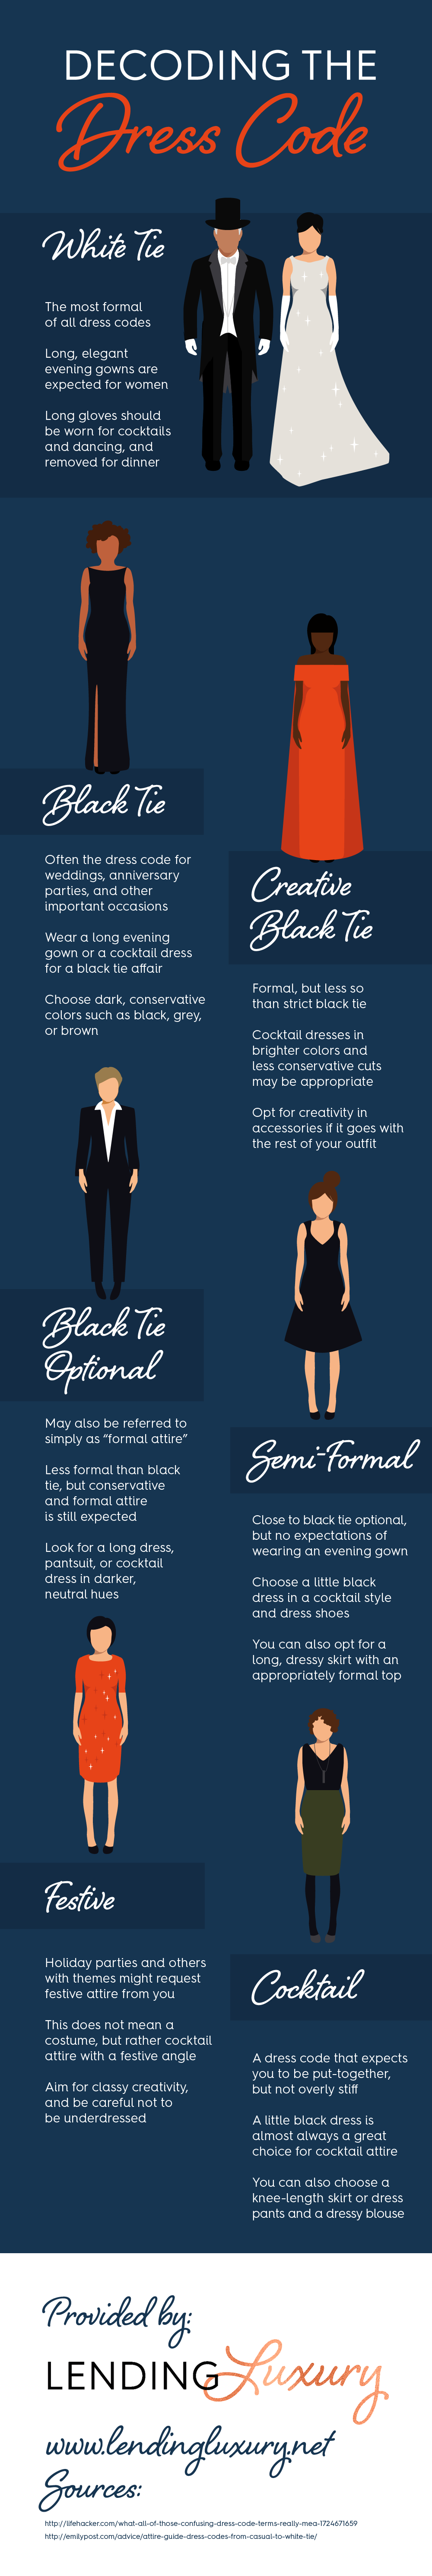 Creative Black Tie White Tie Dress Black Tie Attire Dress Codes